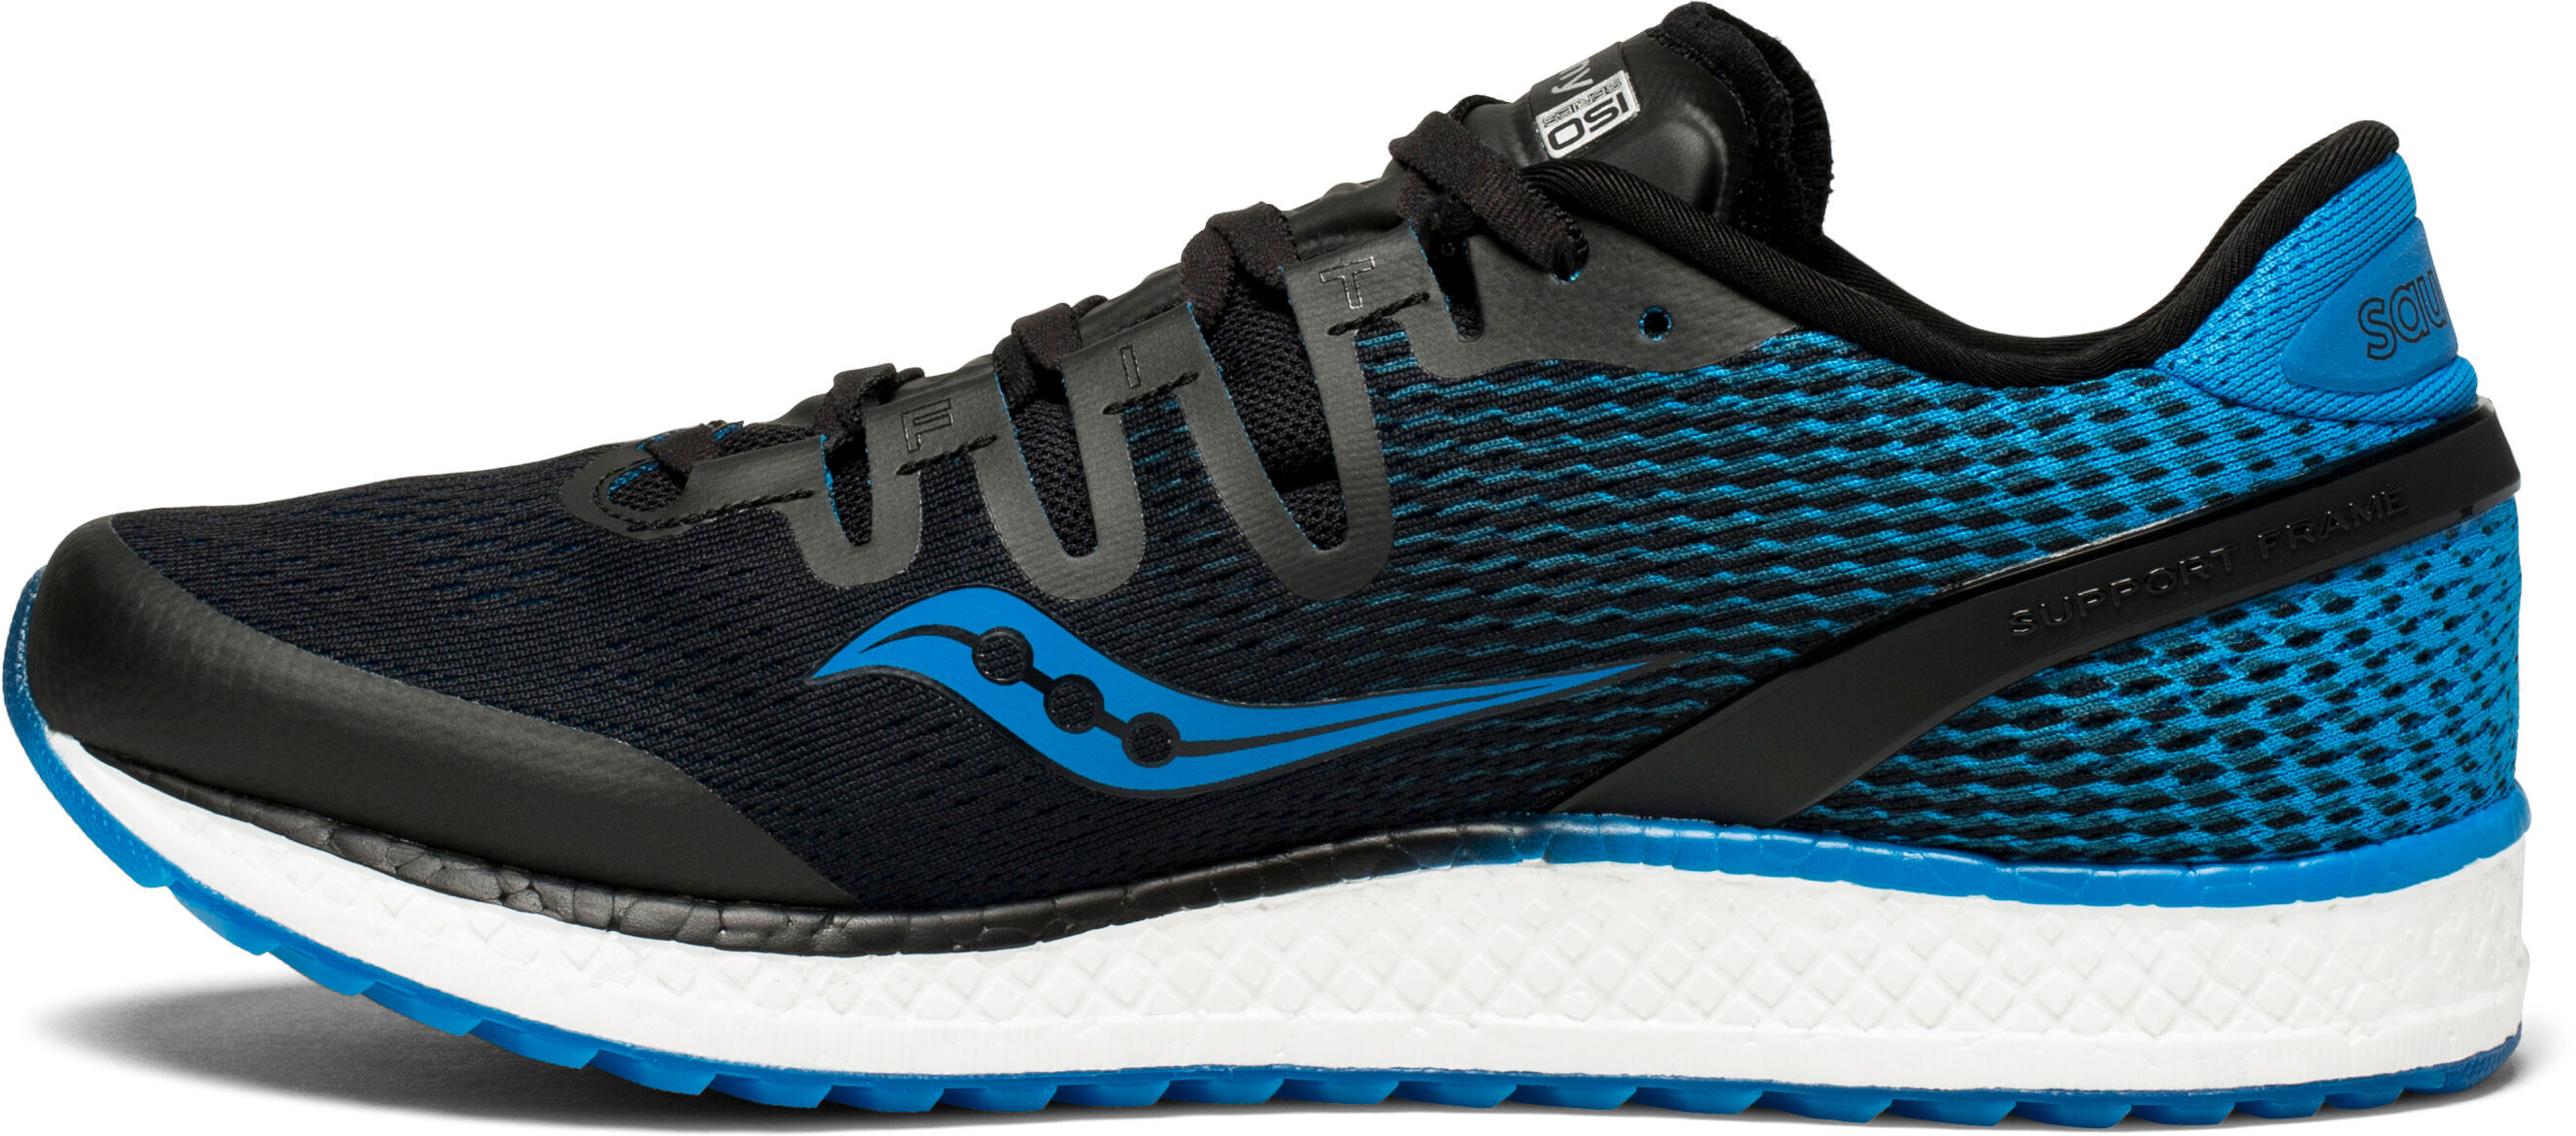 Saucony Road Running Shoes Uk